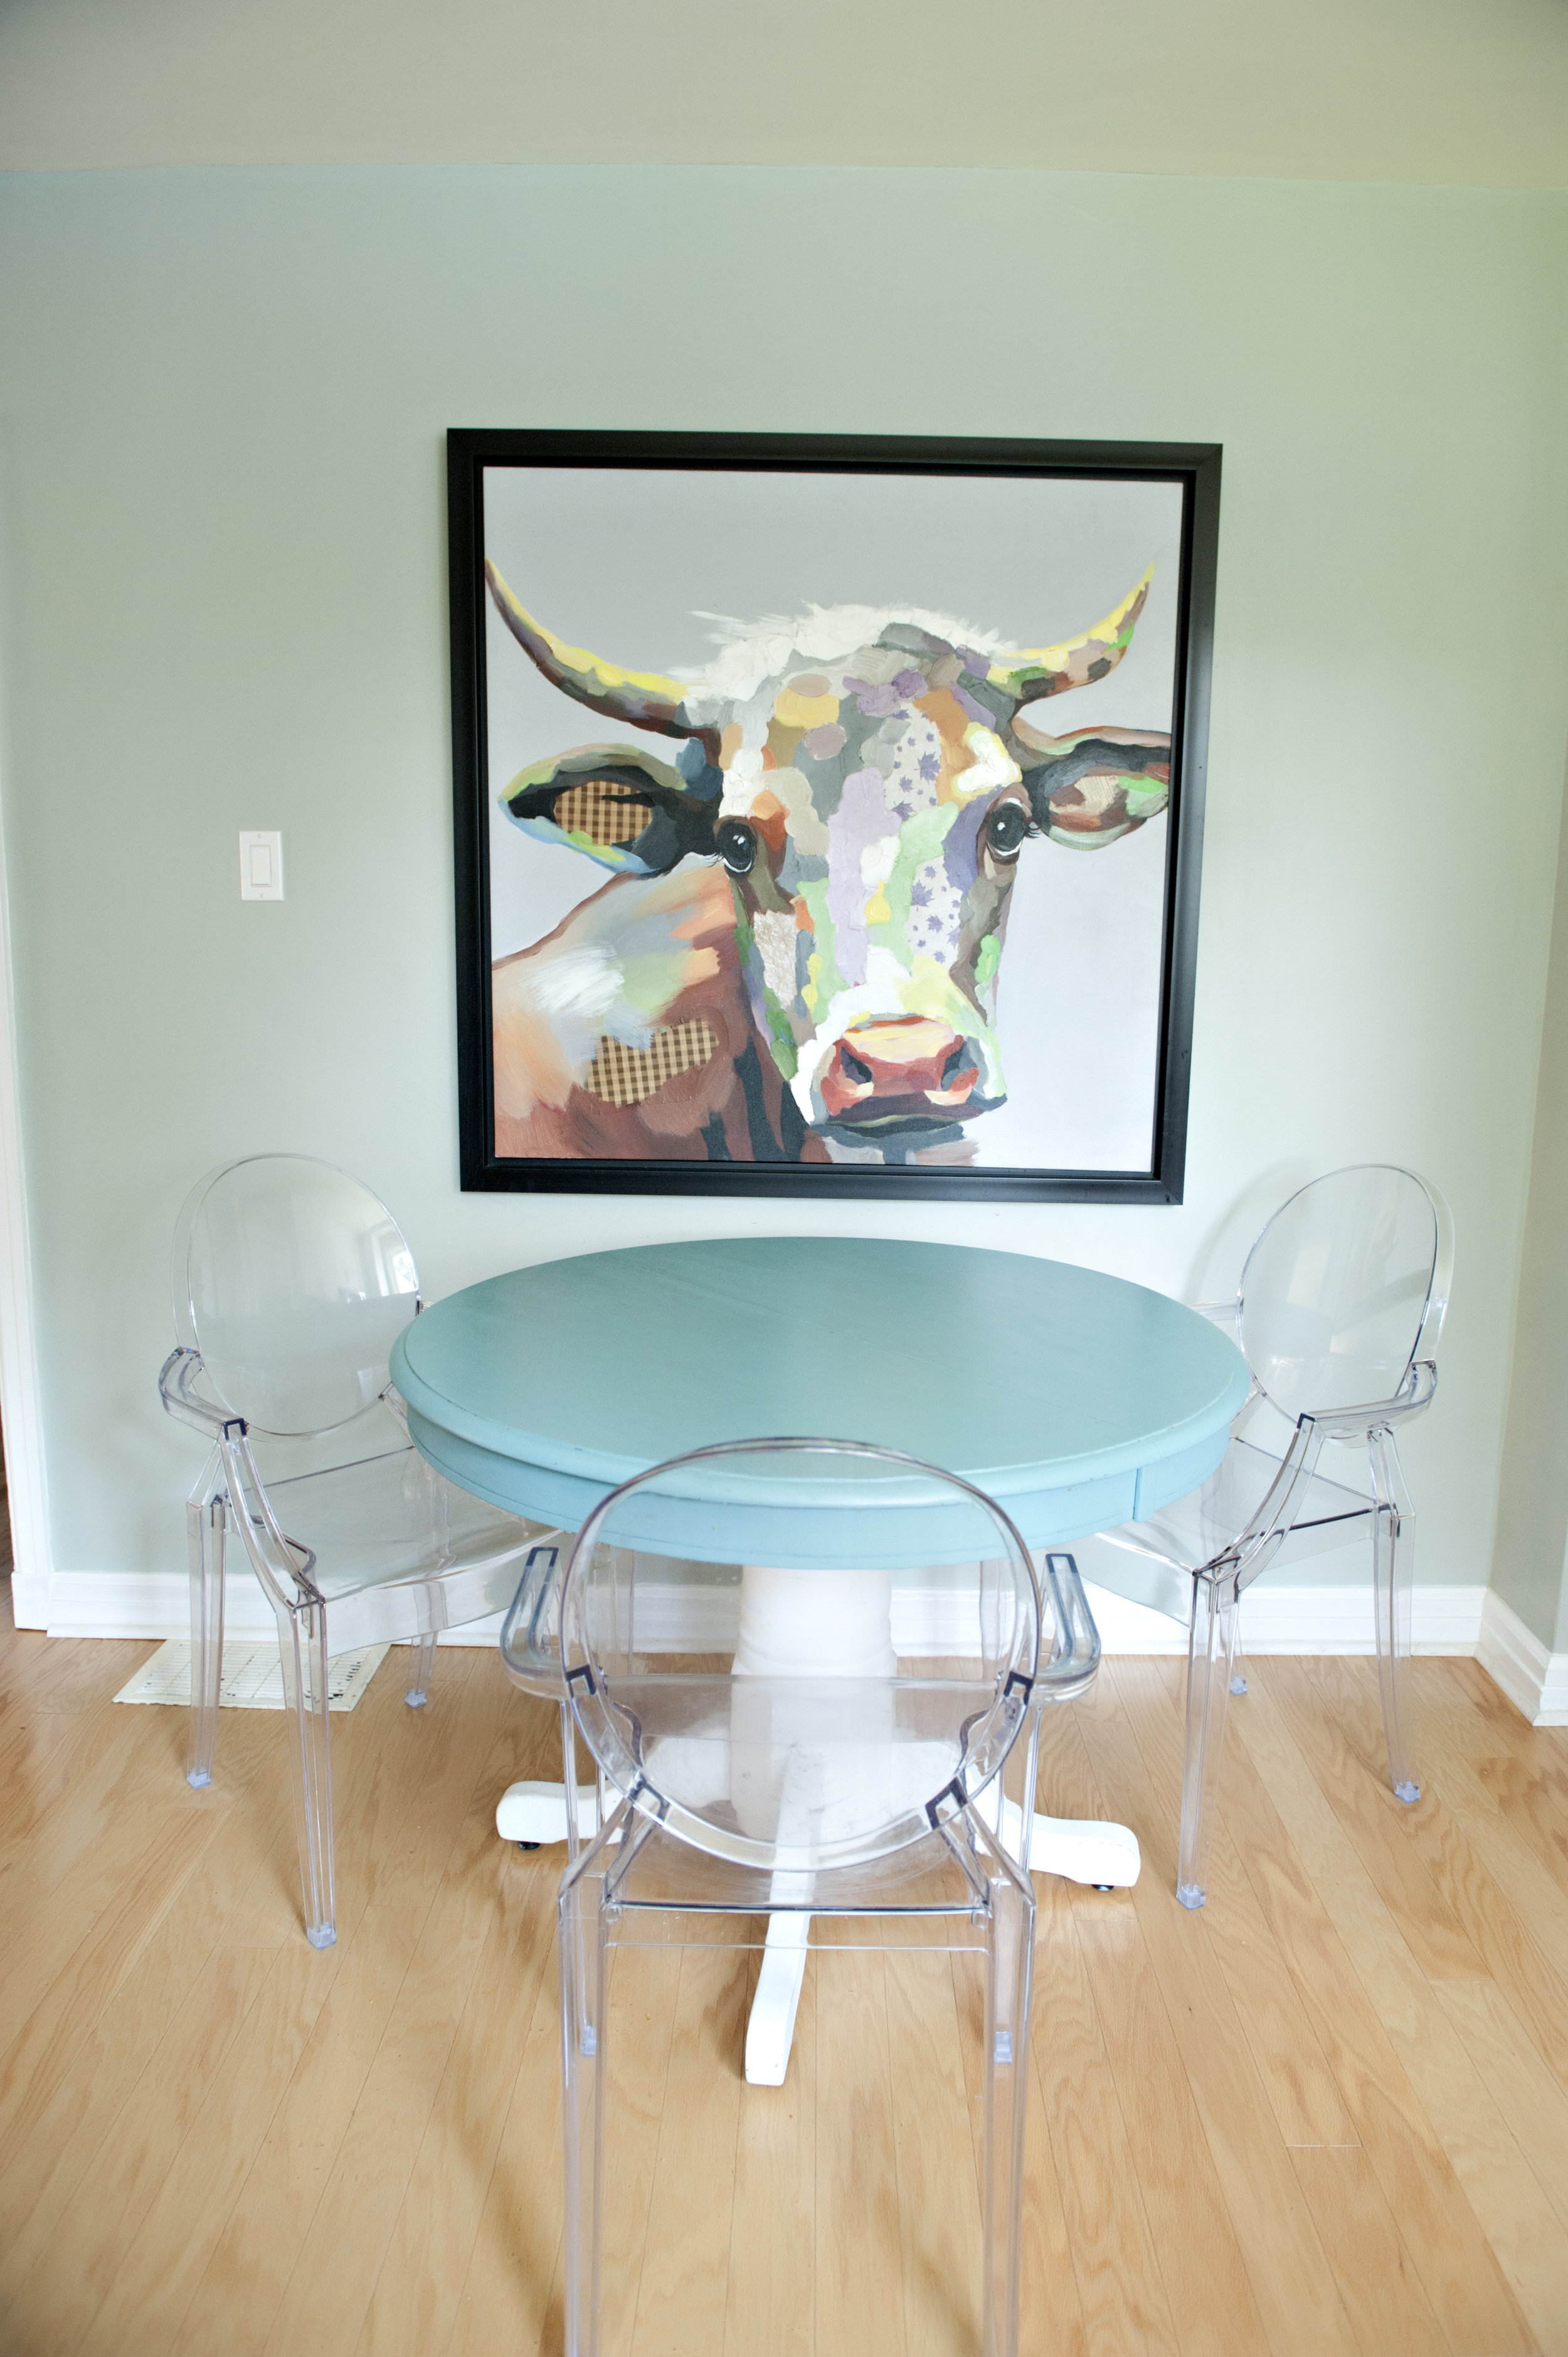 Interior-Design-Cow-Artwork-Transparent-Chairs-Turquoise-Table